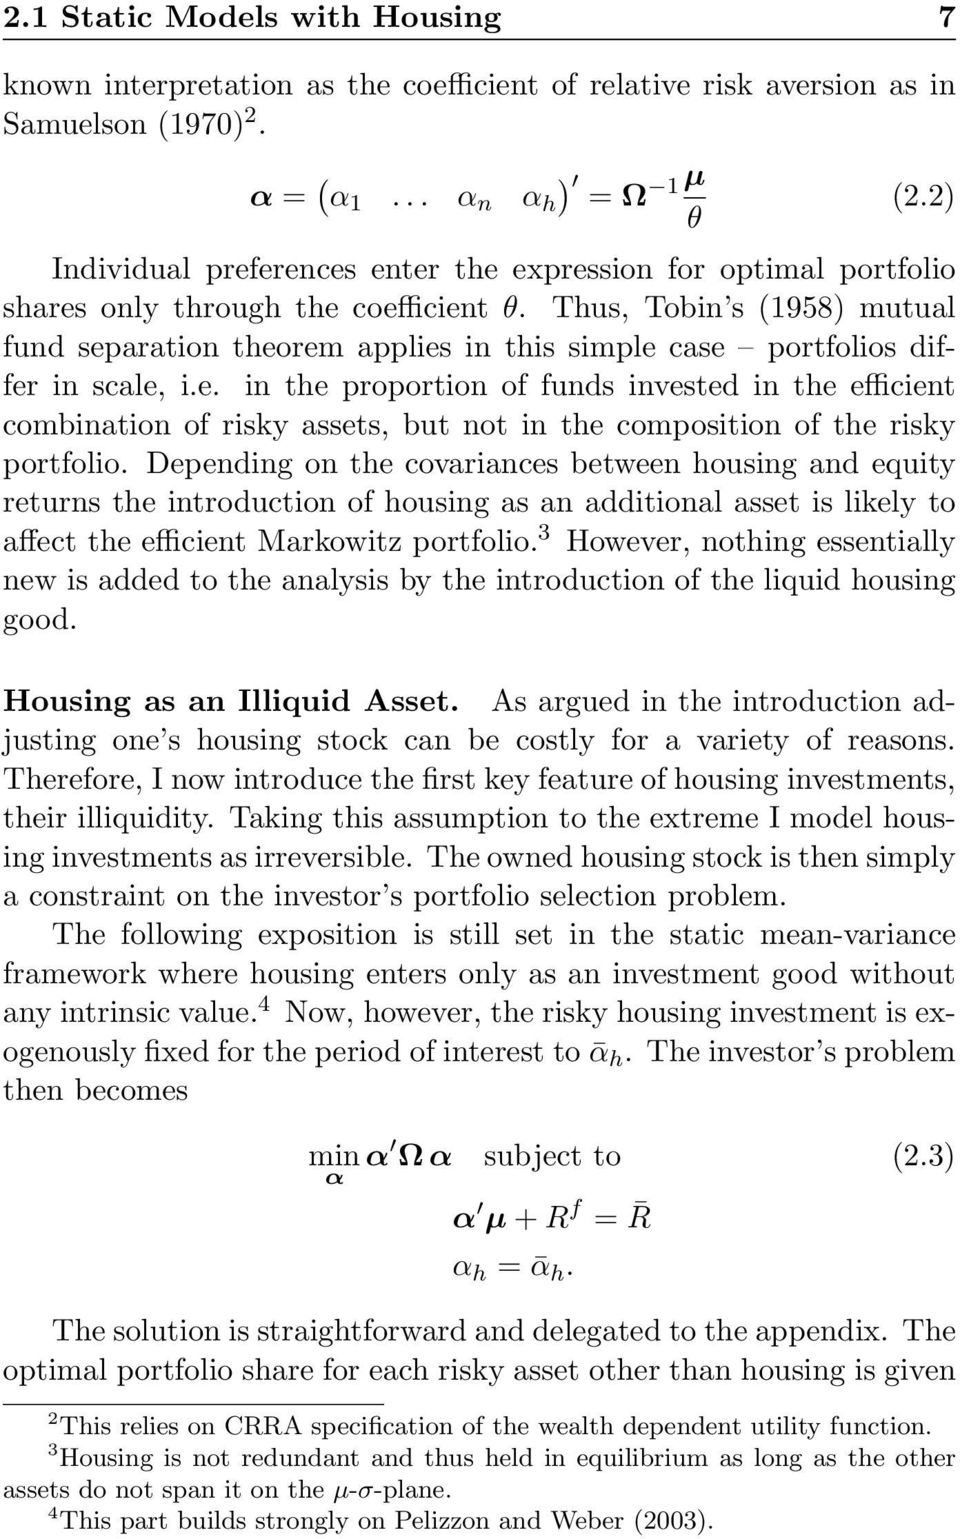 Thus, Tobin s (1958) mutual fund separation theorem applies in this simple case portfolios differ in scale, i.e. in the proportion of funds invested in the efficient combination of risky assets, but not in the composition of the risky portfolio.